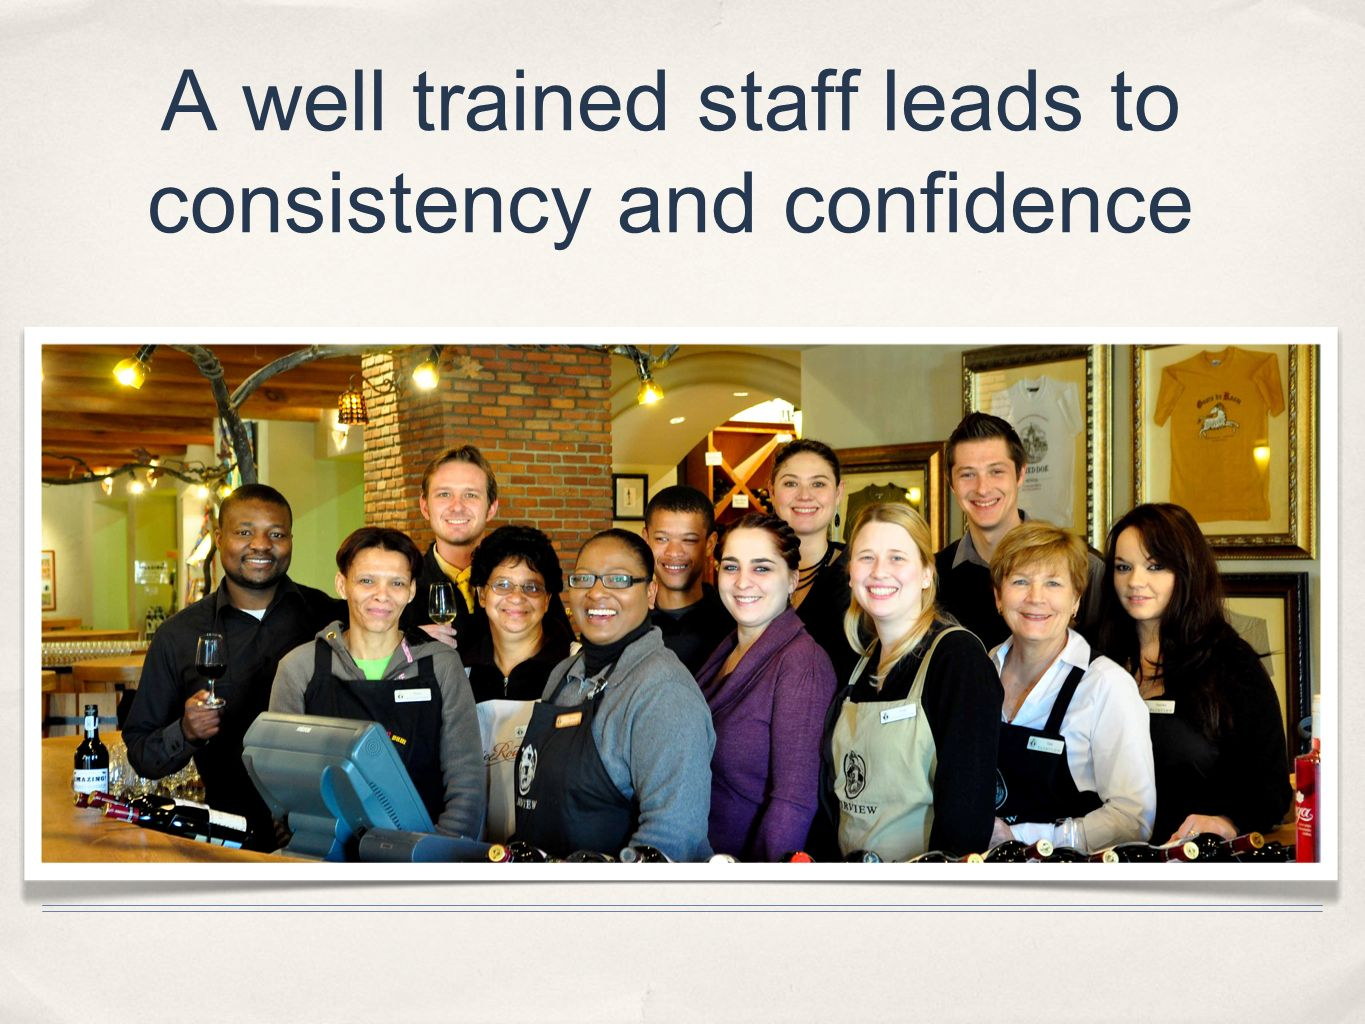 A well trained staff leads to consistency and confidence